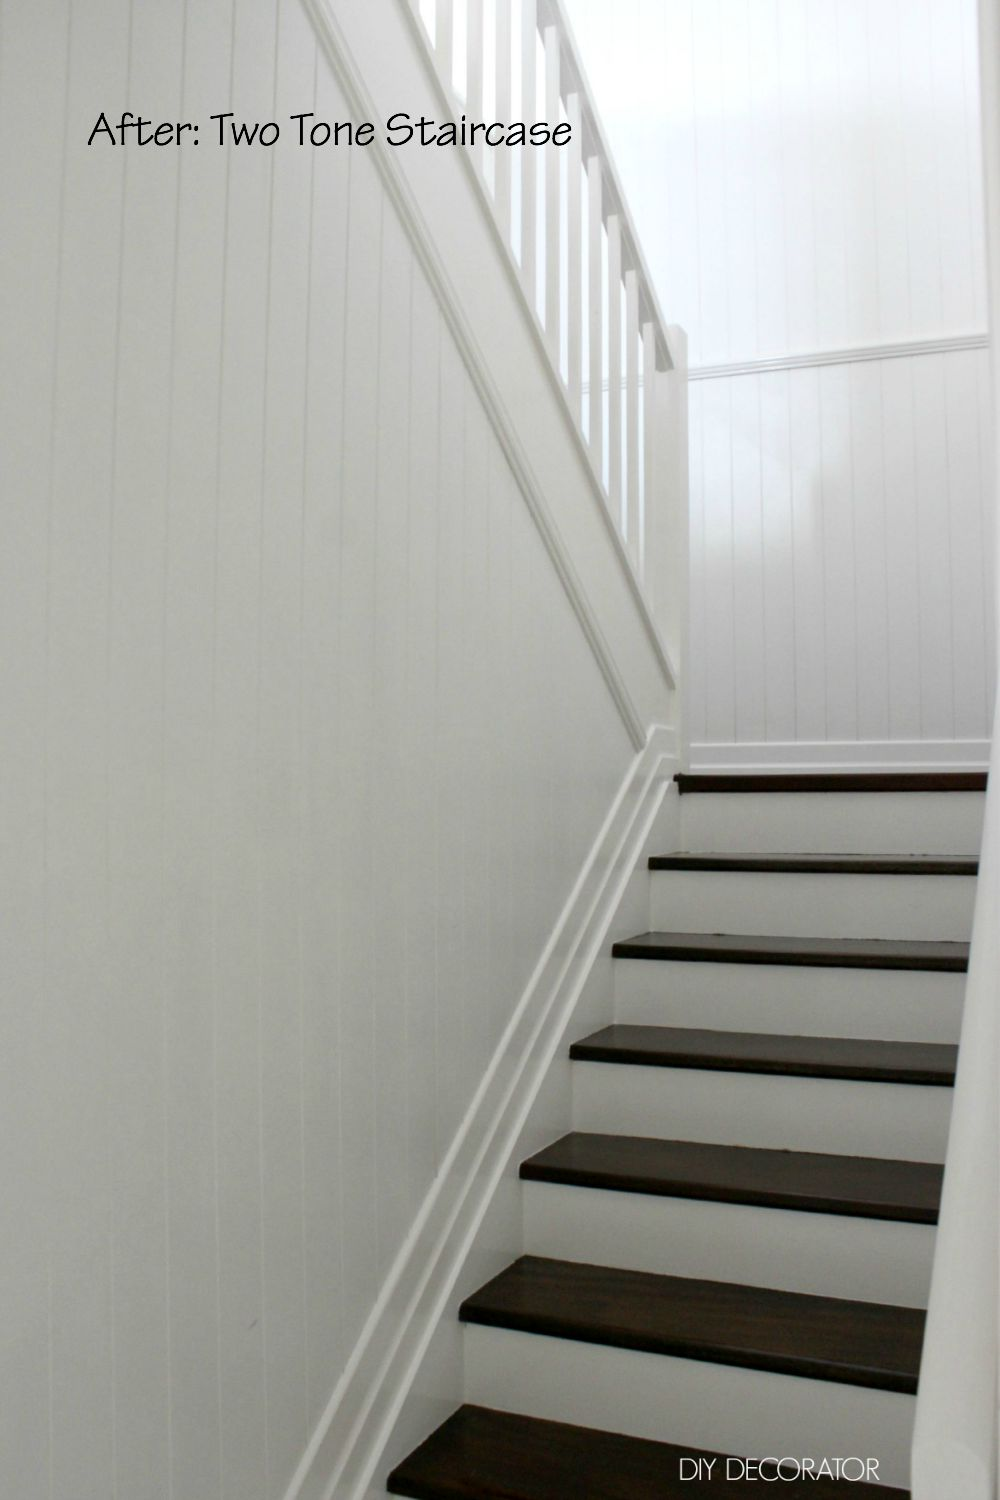 DIY Two Tone Staircase